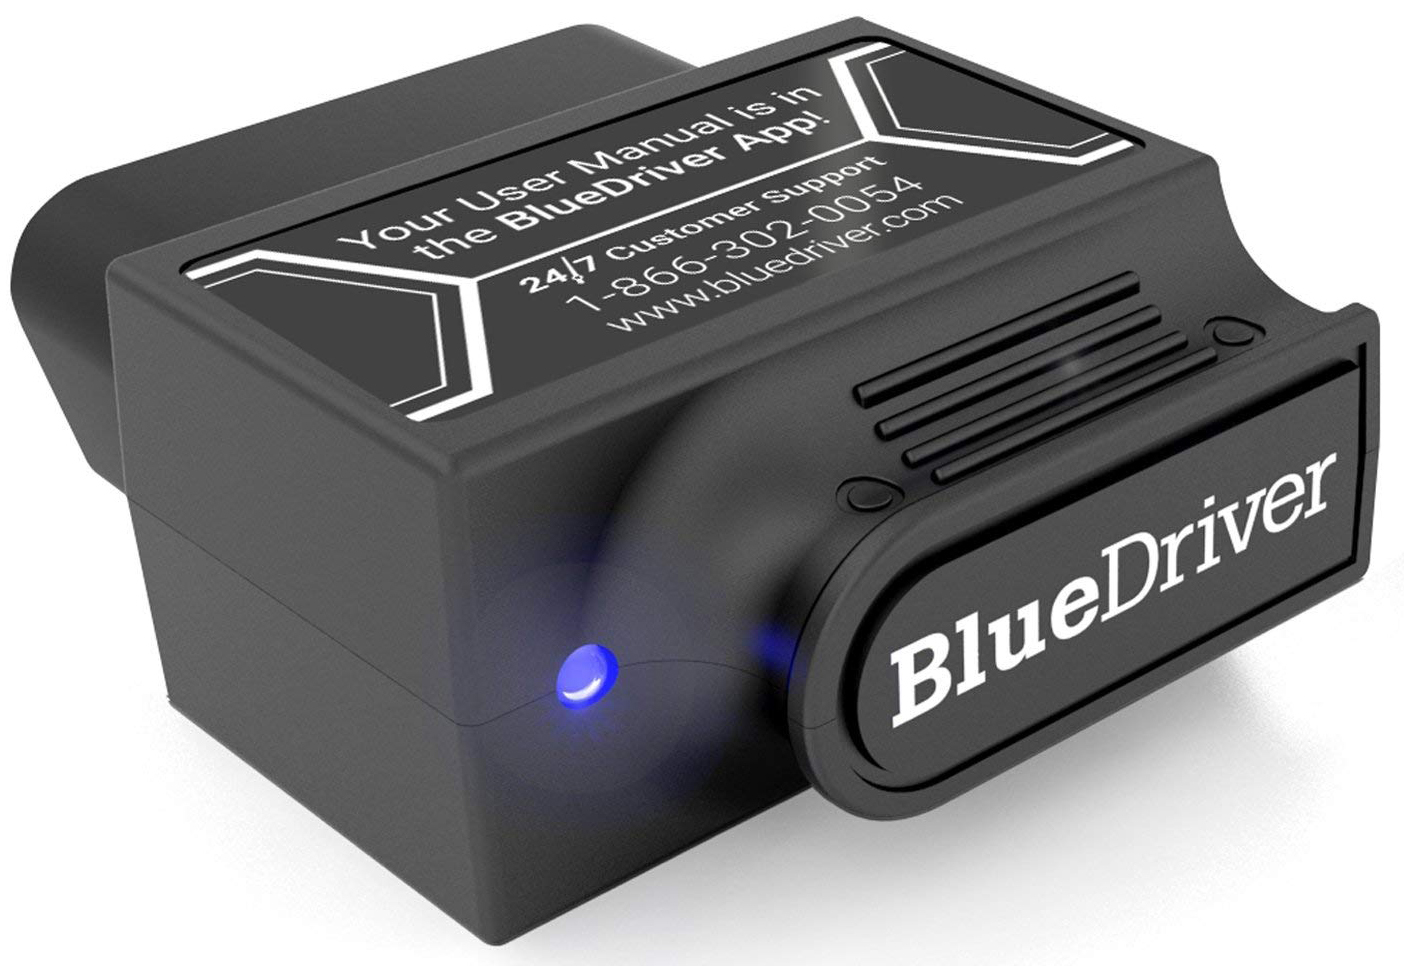 Blue Driver Bluetooth Professional OBDII Scan Tool